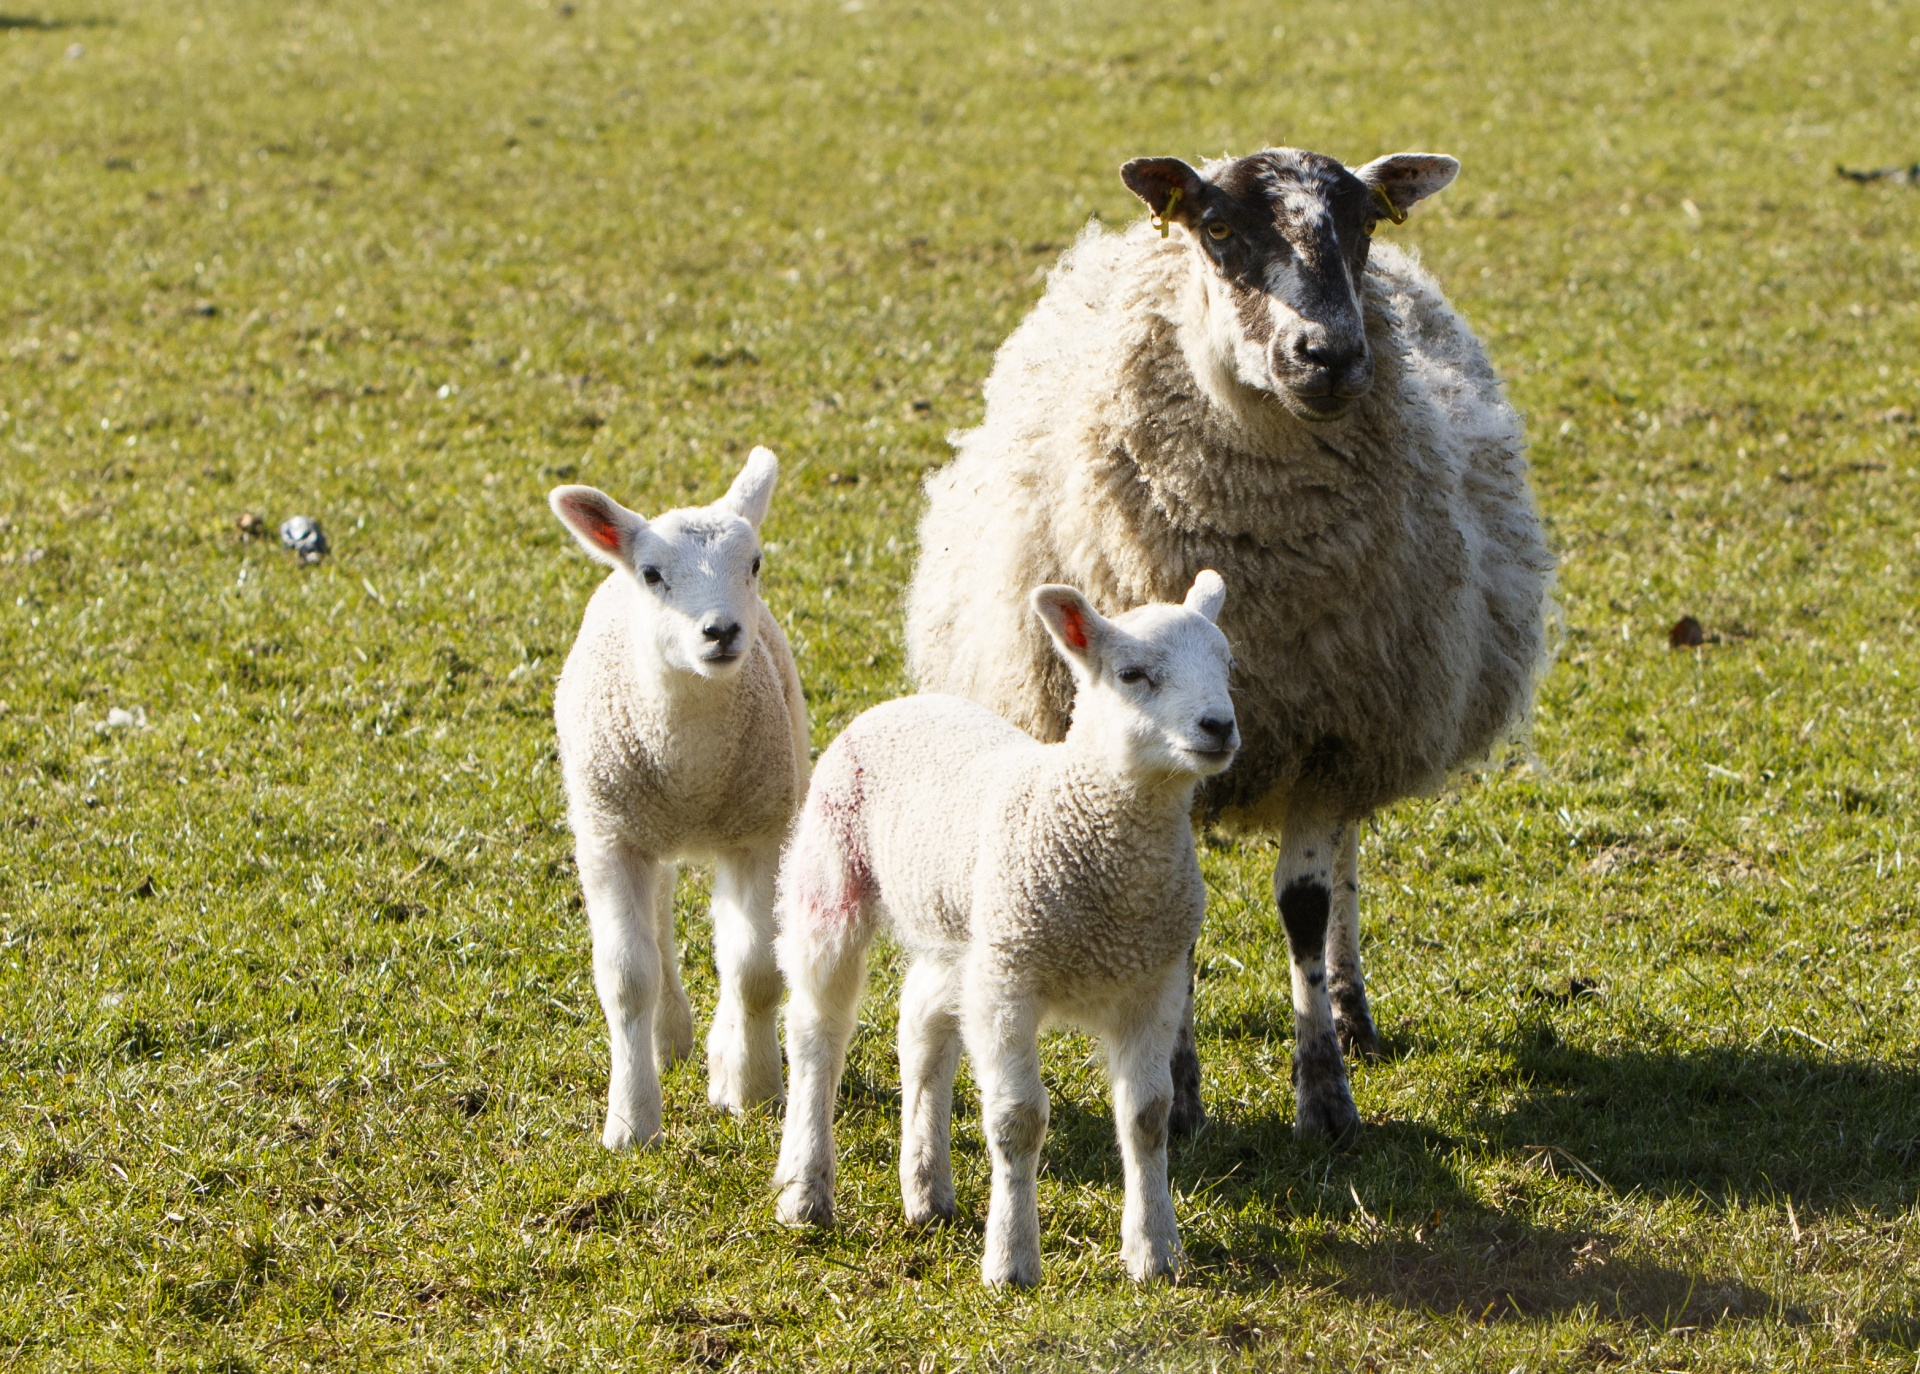 Lambs And Mother Sheep Free Stock Photo - Public Domain Pictures